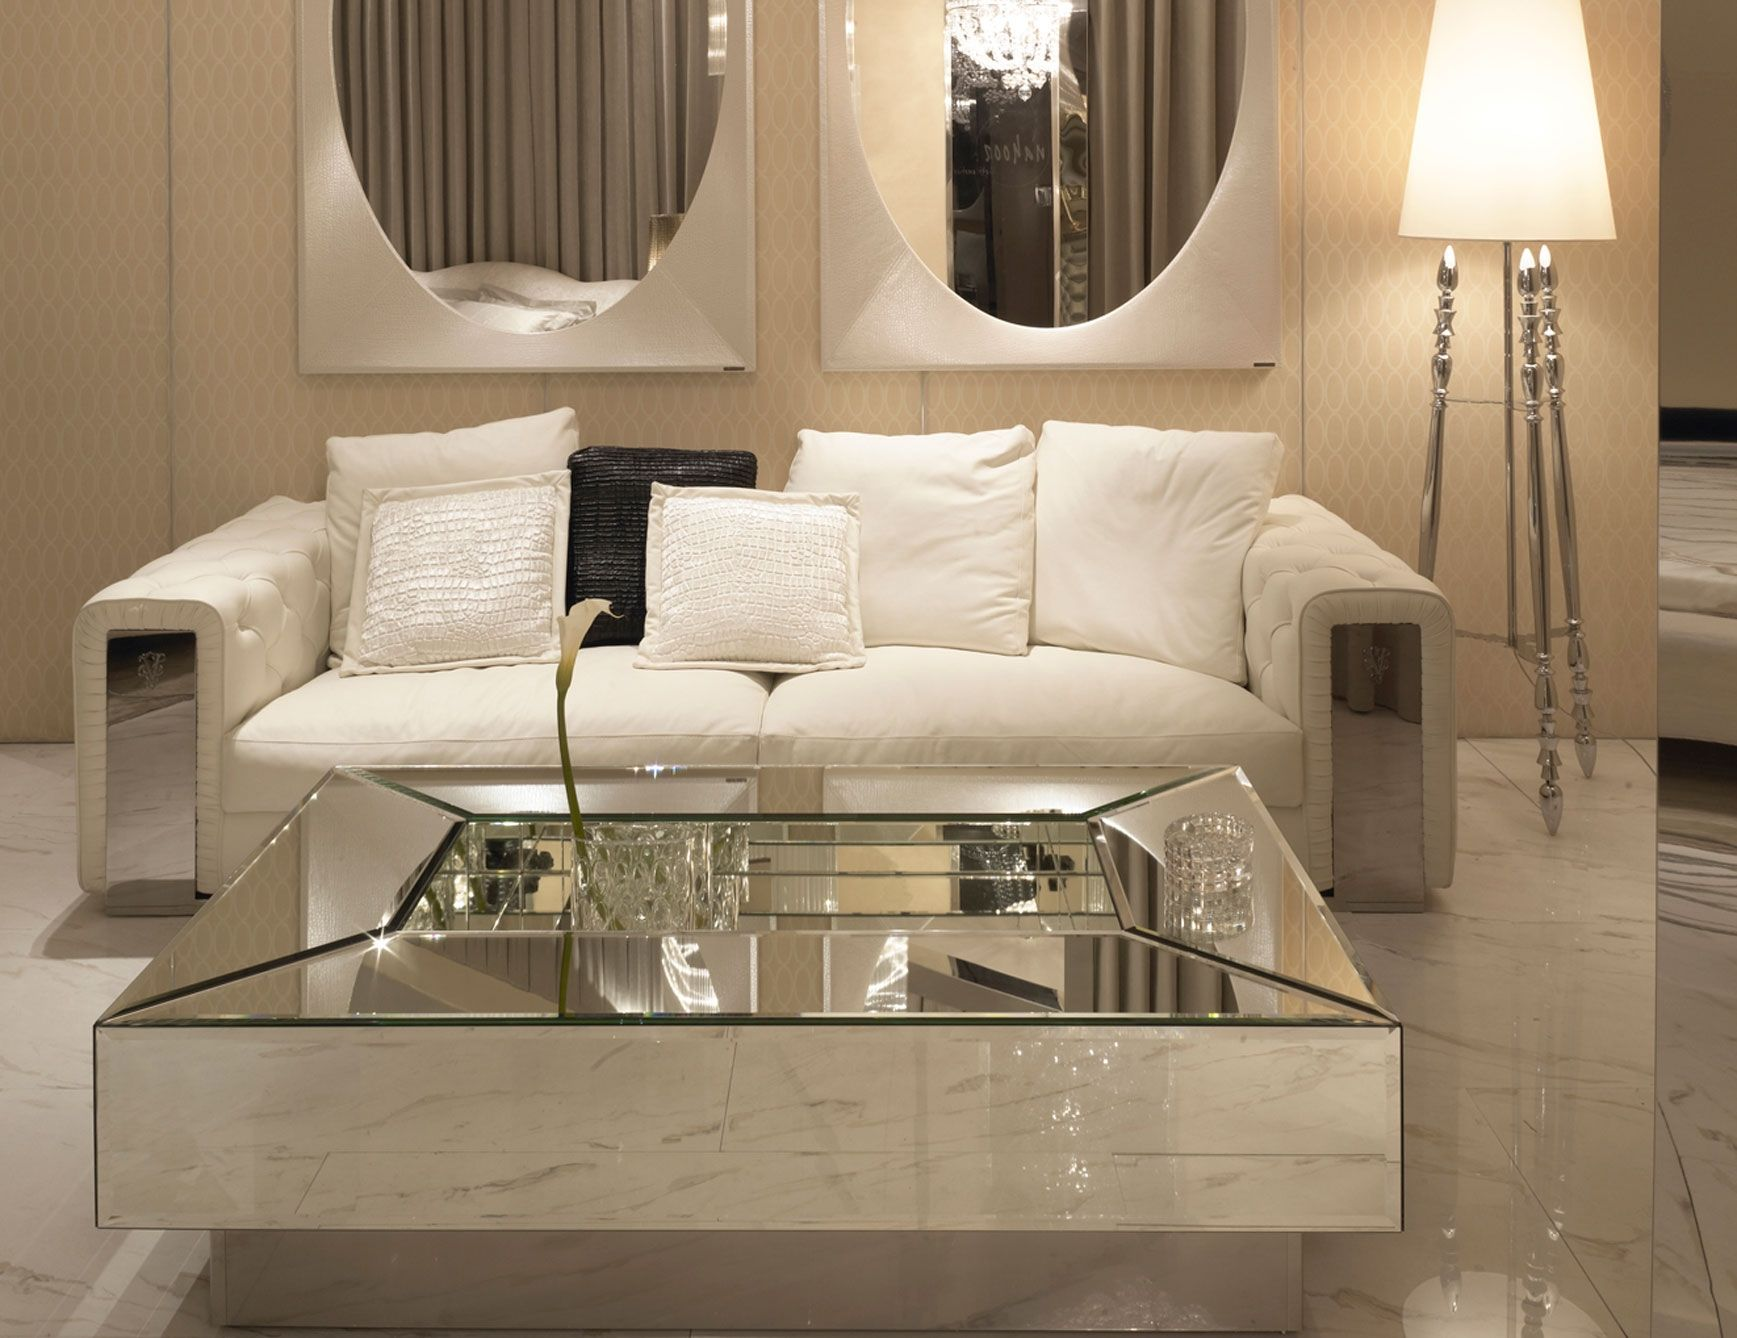 Mesmerizing mirrored coffee table with glass and wood for White sitting room furniture